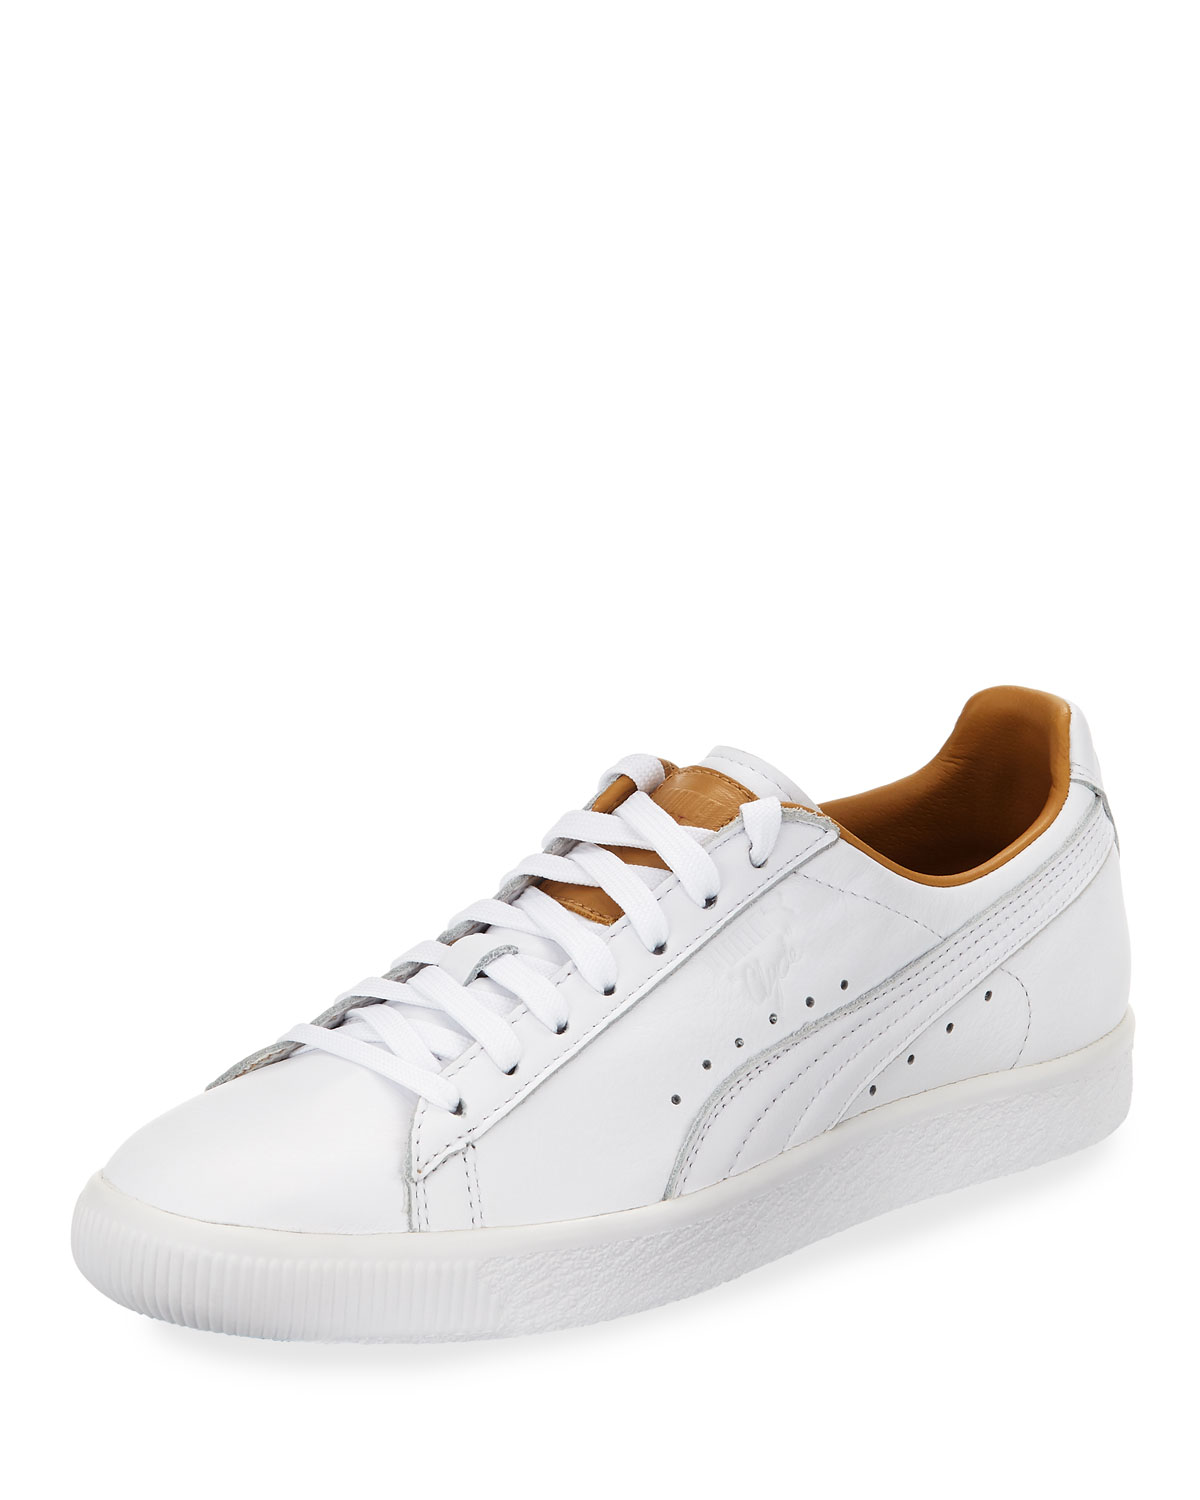 122d1830571 Puma Clyde Core Perforated Sneaker